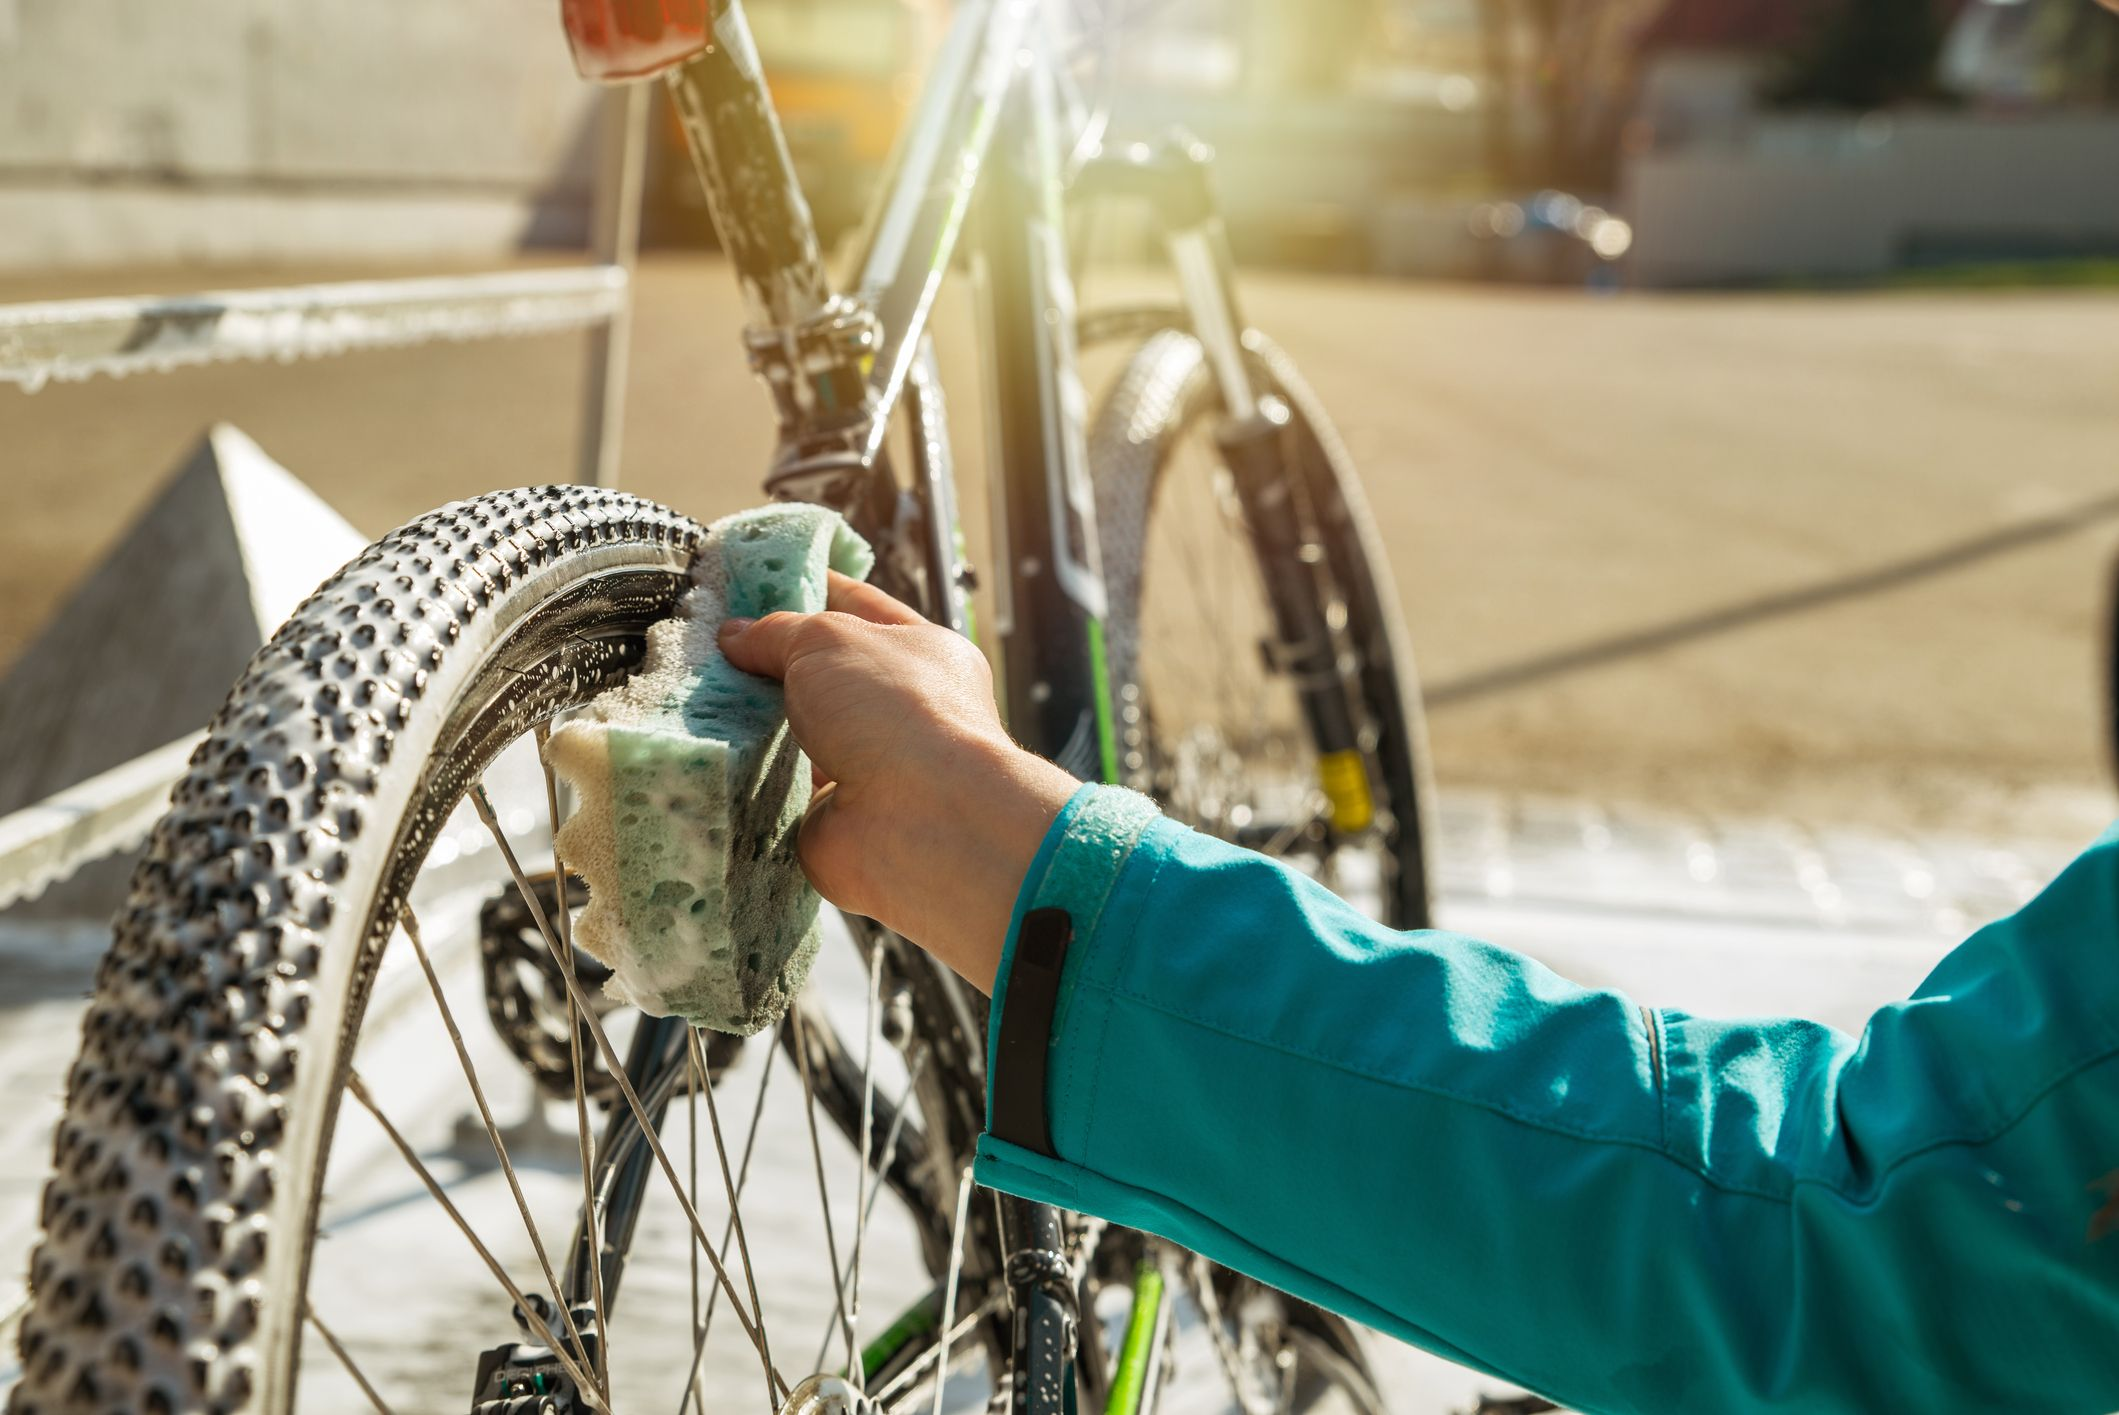 woman hand cleaning bicycle wheel with sponge.